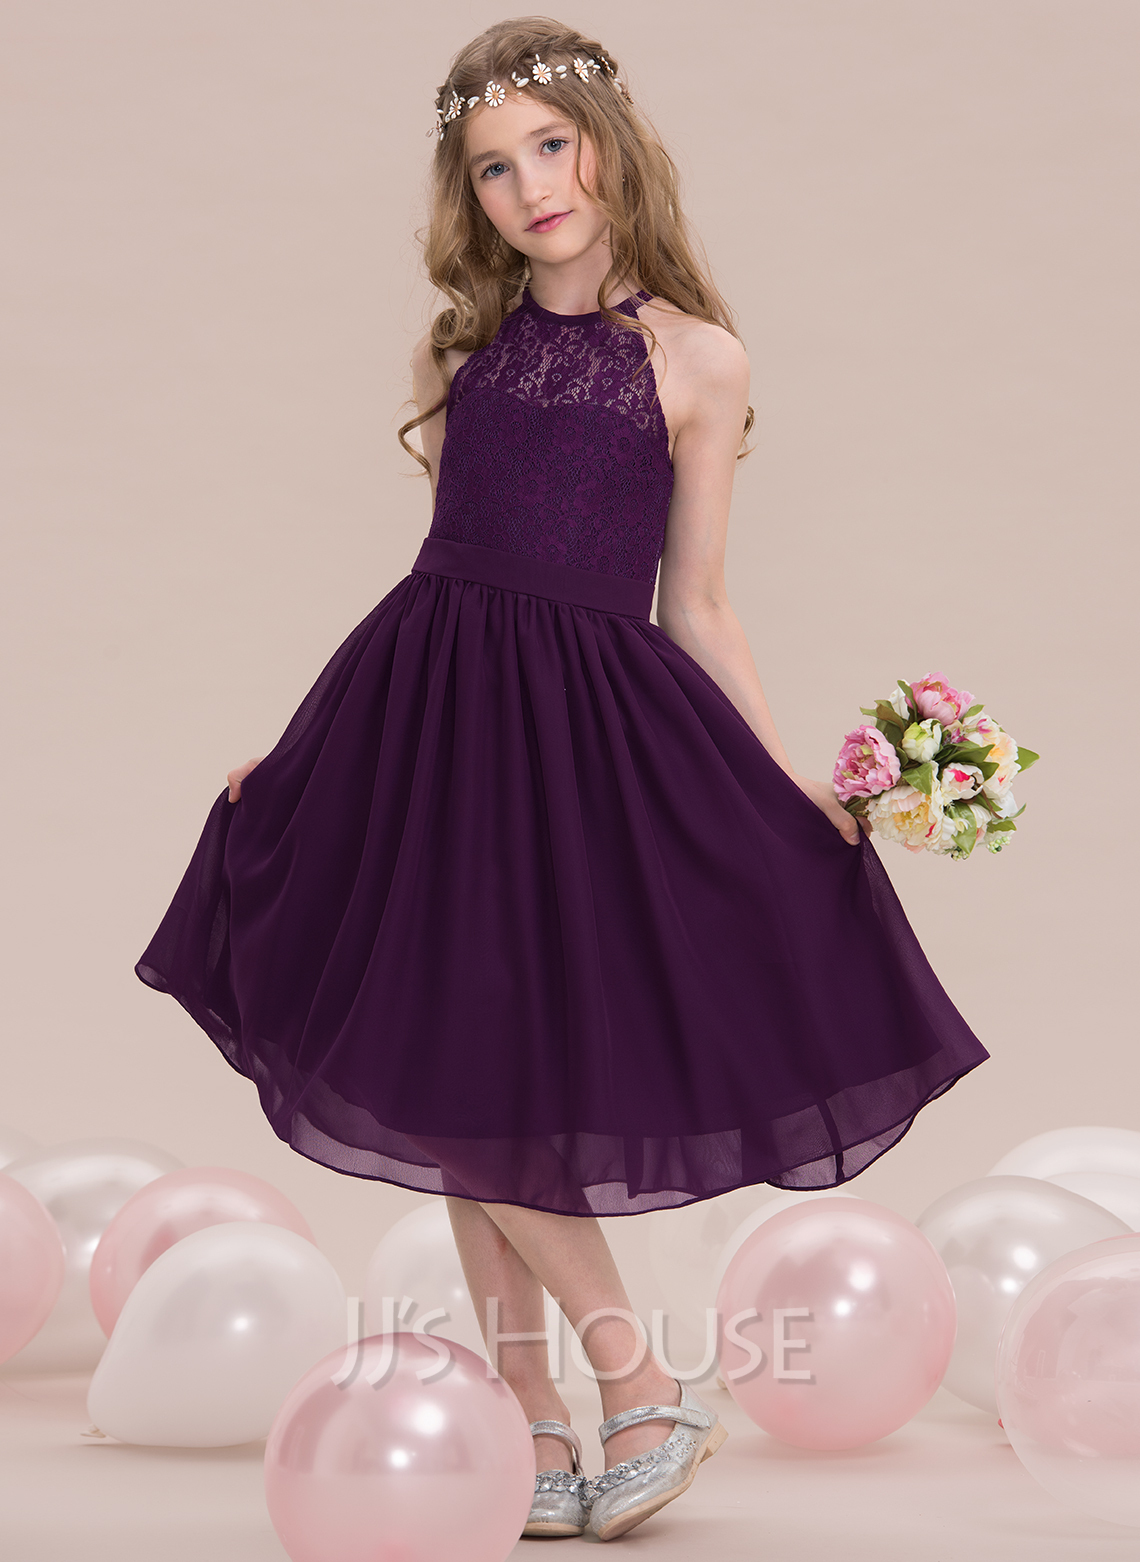 e86a827b54a A-Line Princess Scoop Neck Knee-Length Chiffon Junior Bridesmaid Dress.  Loading zoom